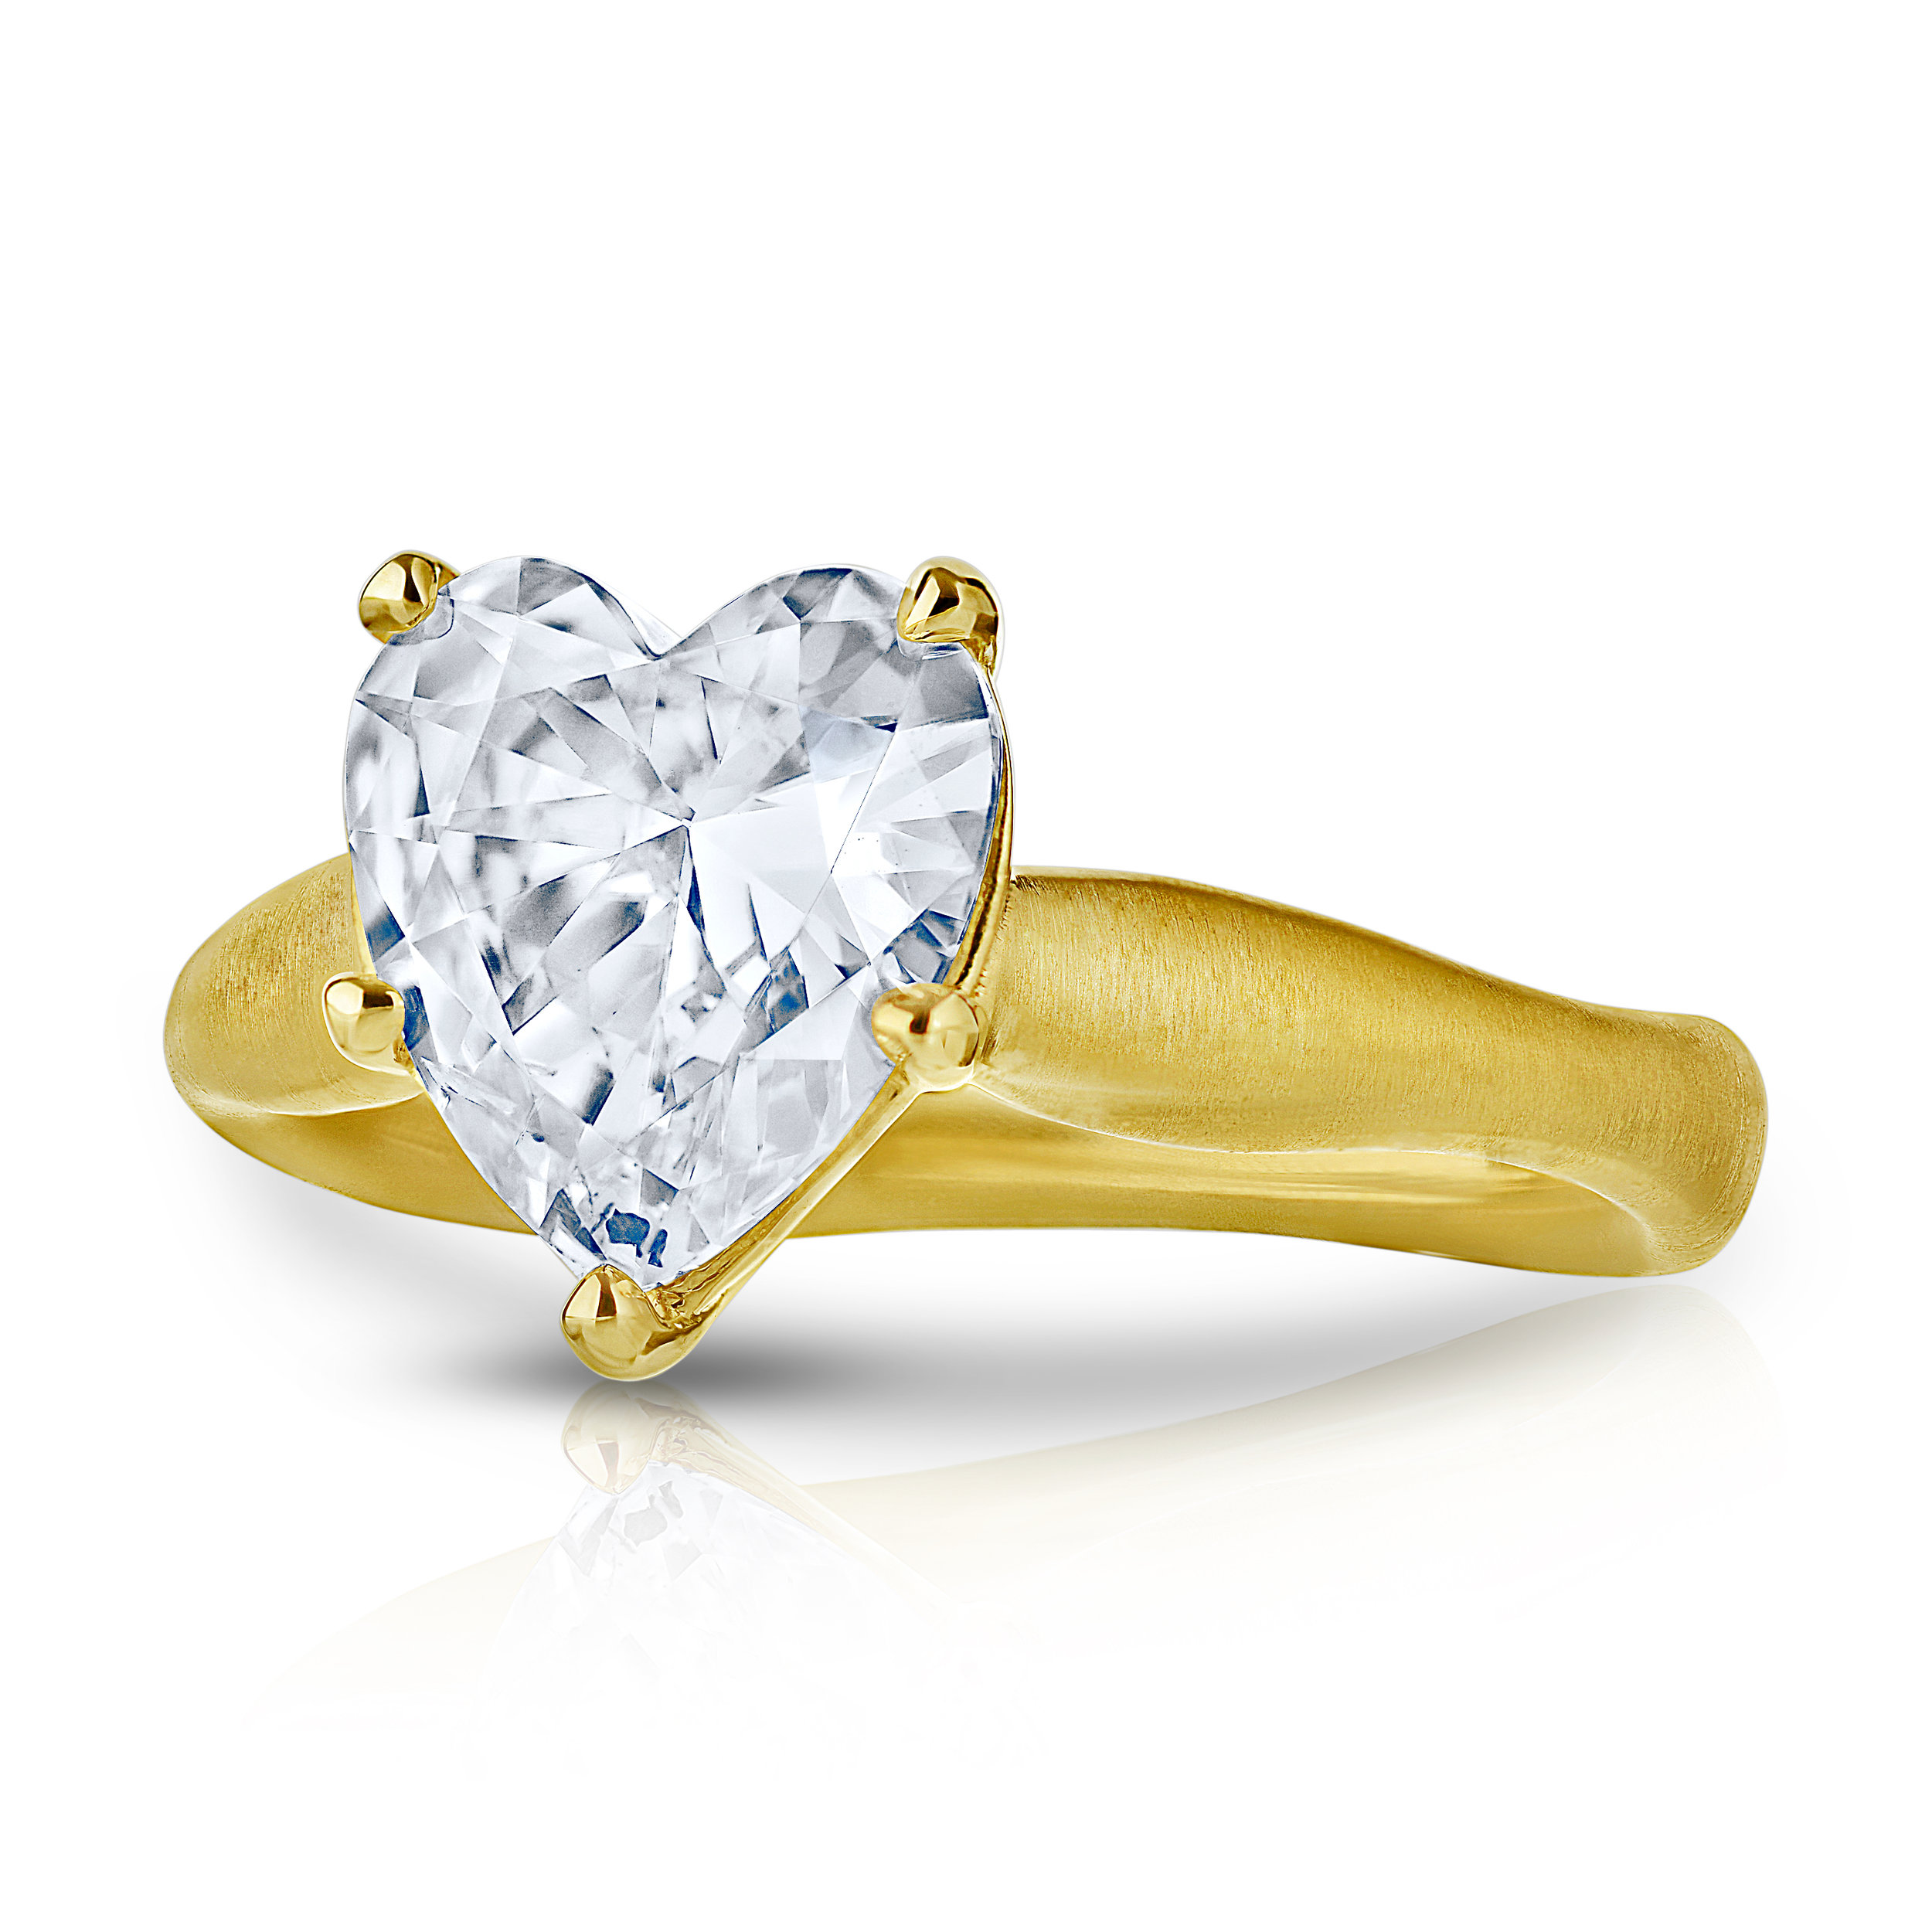 HEART SHAPED DIAMOND SOLITAIRE SET IN A WAVY BAND CRAFTED IN 18K YELLOW GOLD WITH MATTE FINISH, 1.76 CTW